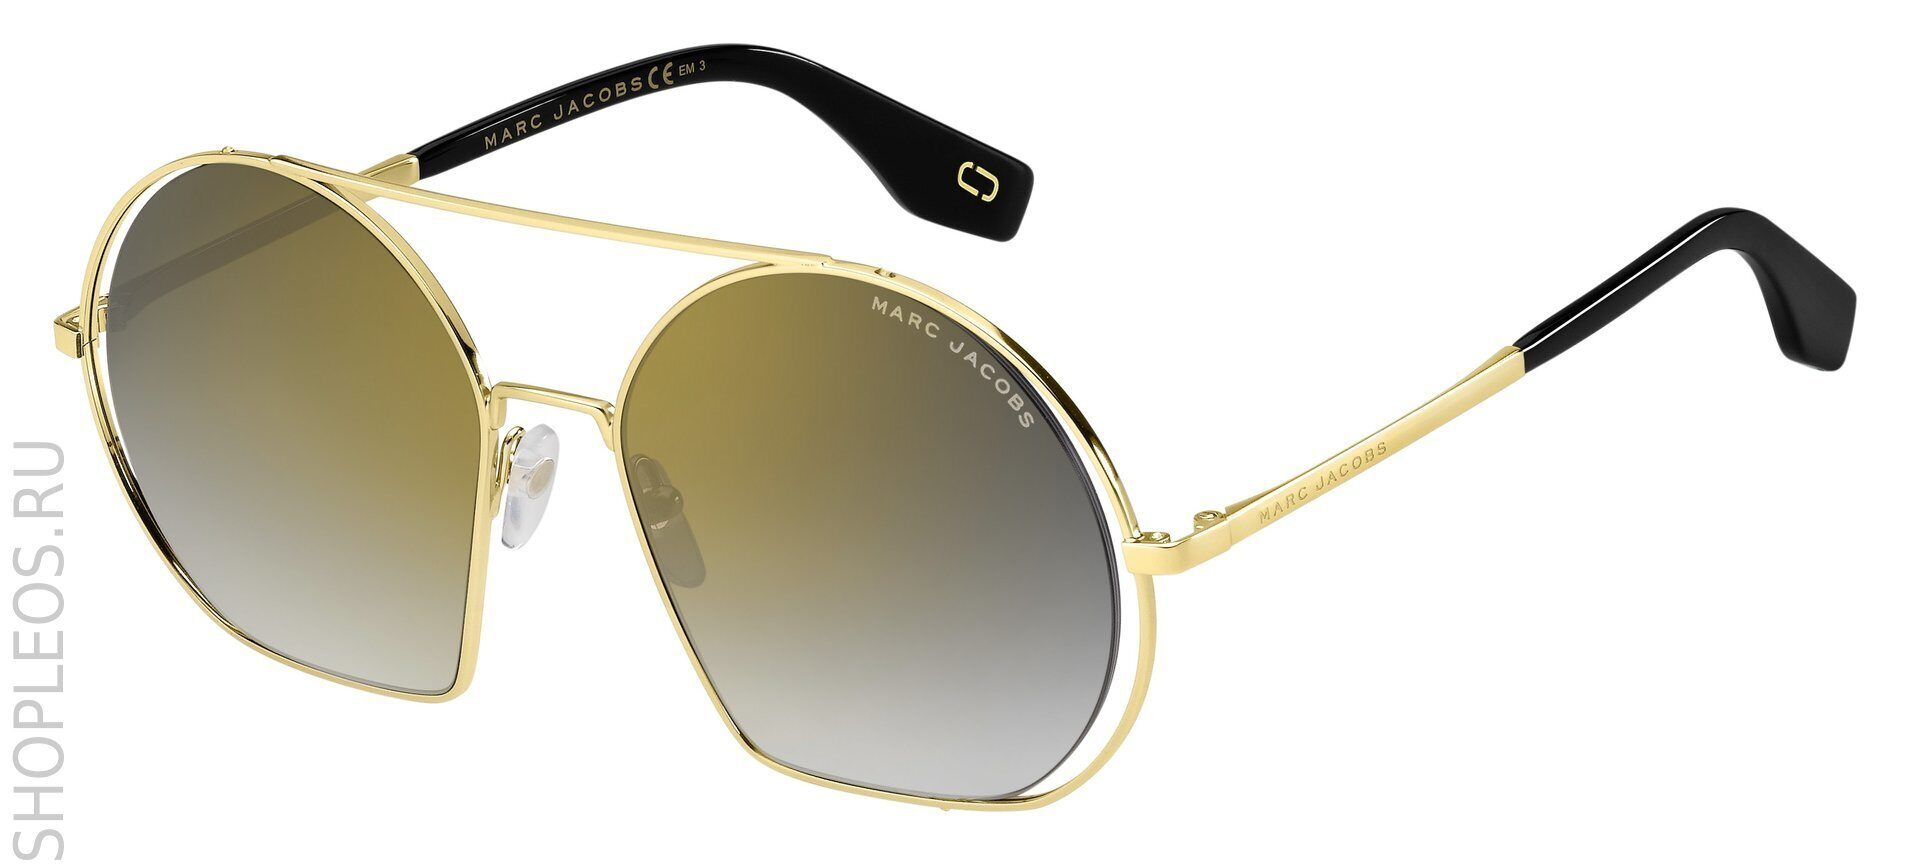 MARC JACOBS WOMAN MARC 325/S 2F7